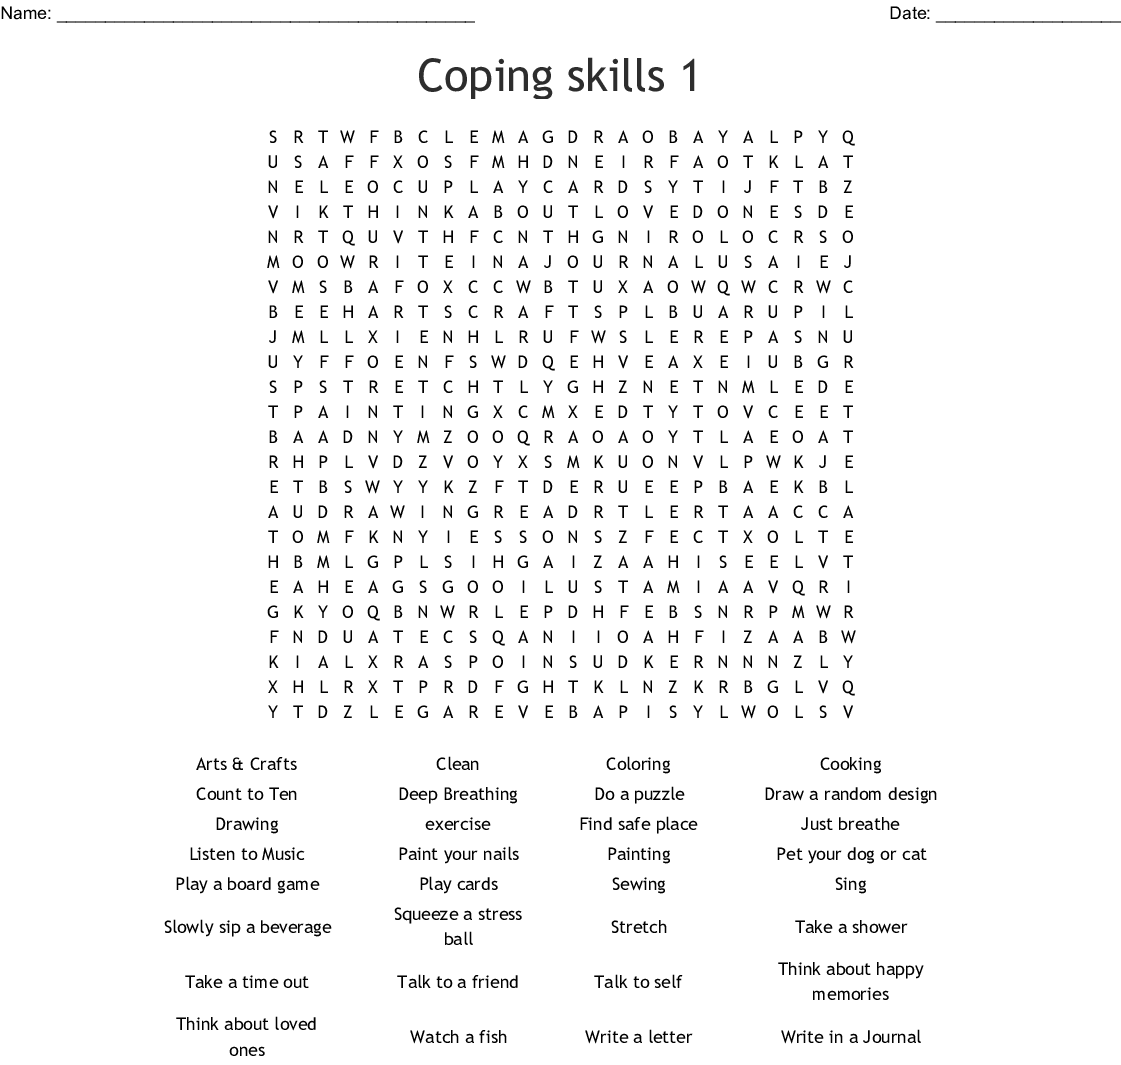 Positive Coping Skills Word Search